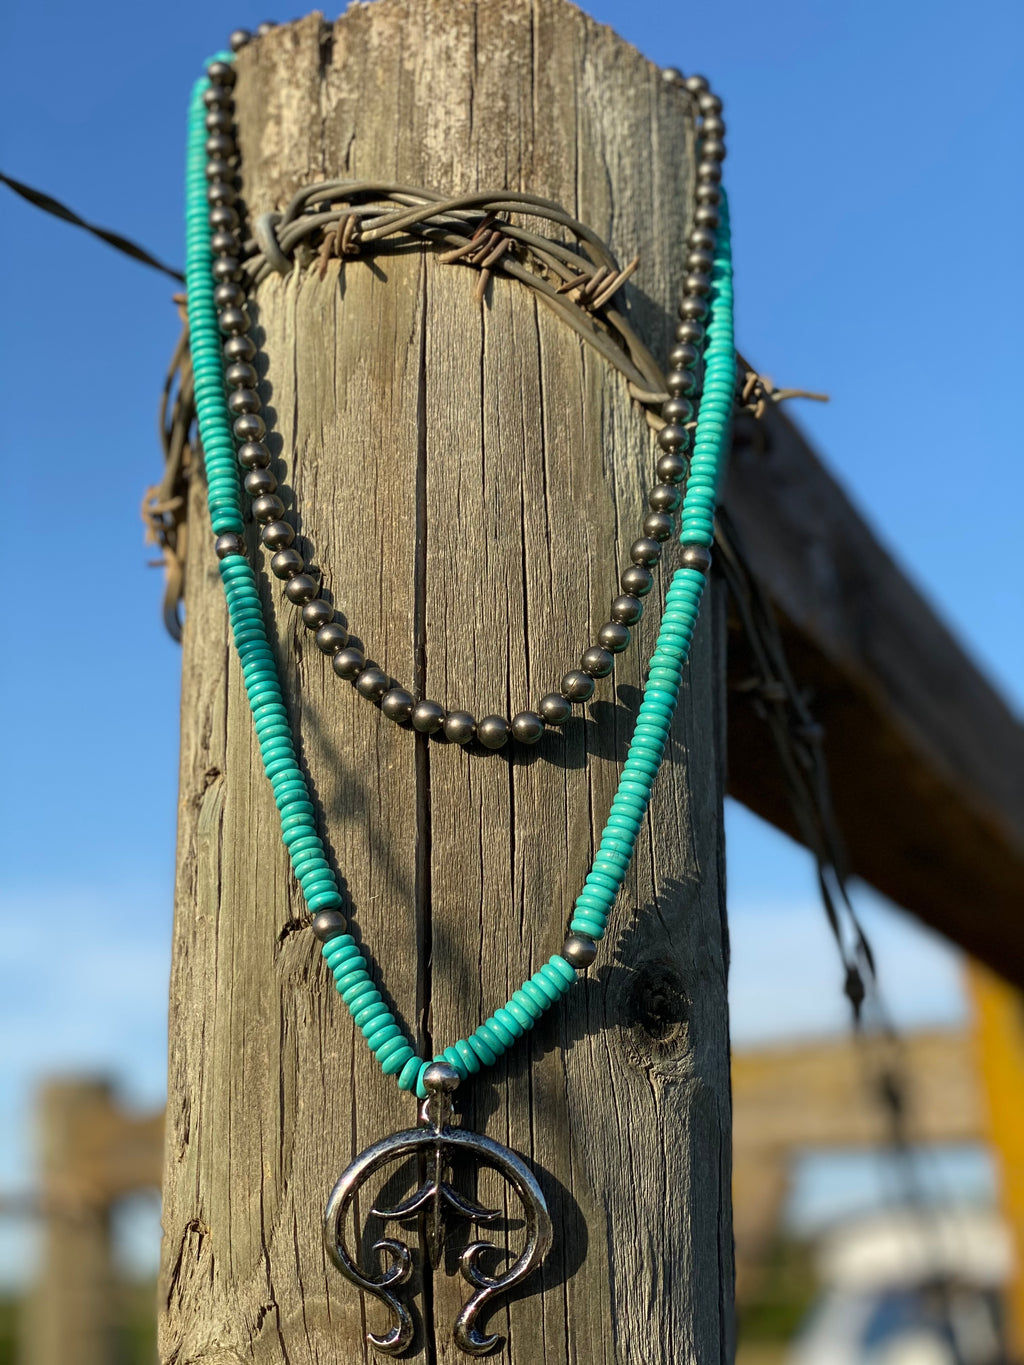 The South Of Rio Turquoise Squash Blossom Necklace